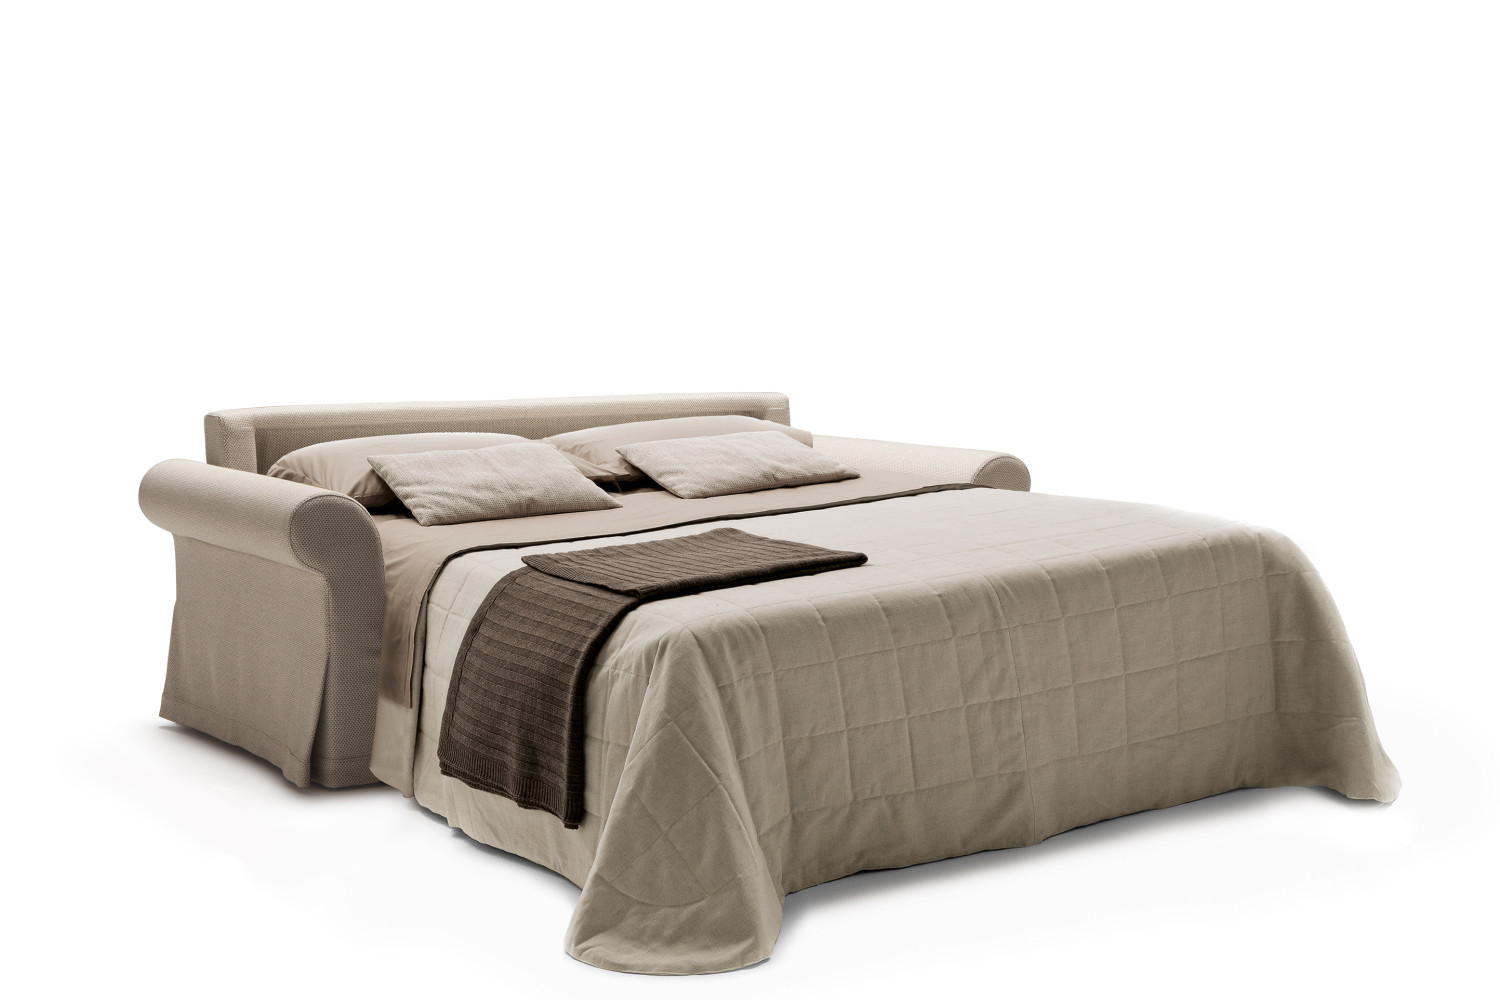 canape convertible avec un vrai matelas maison design. Black Bedroom Furniture Sets. Home Design Ideas